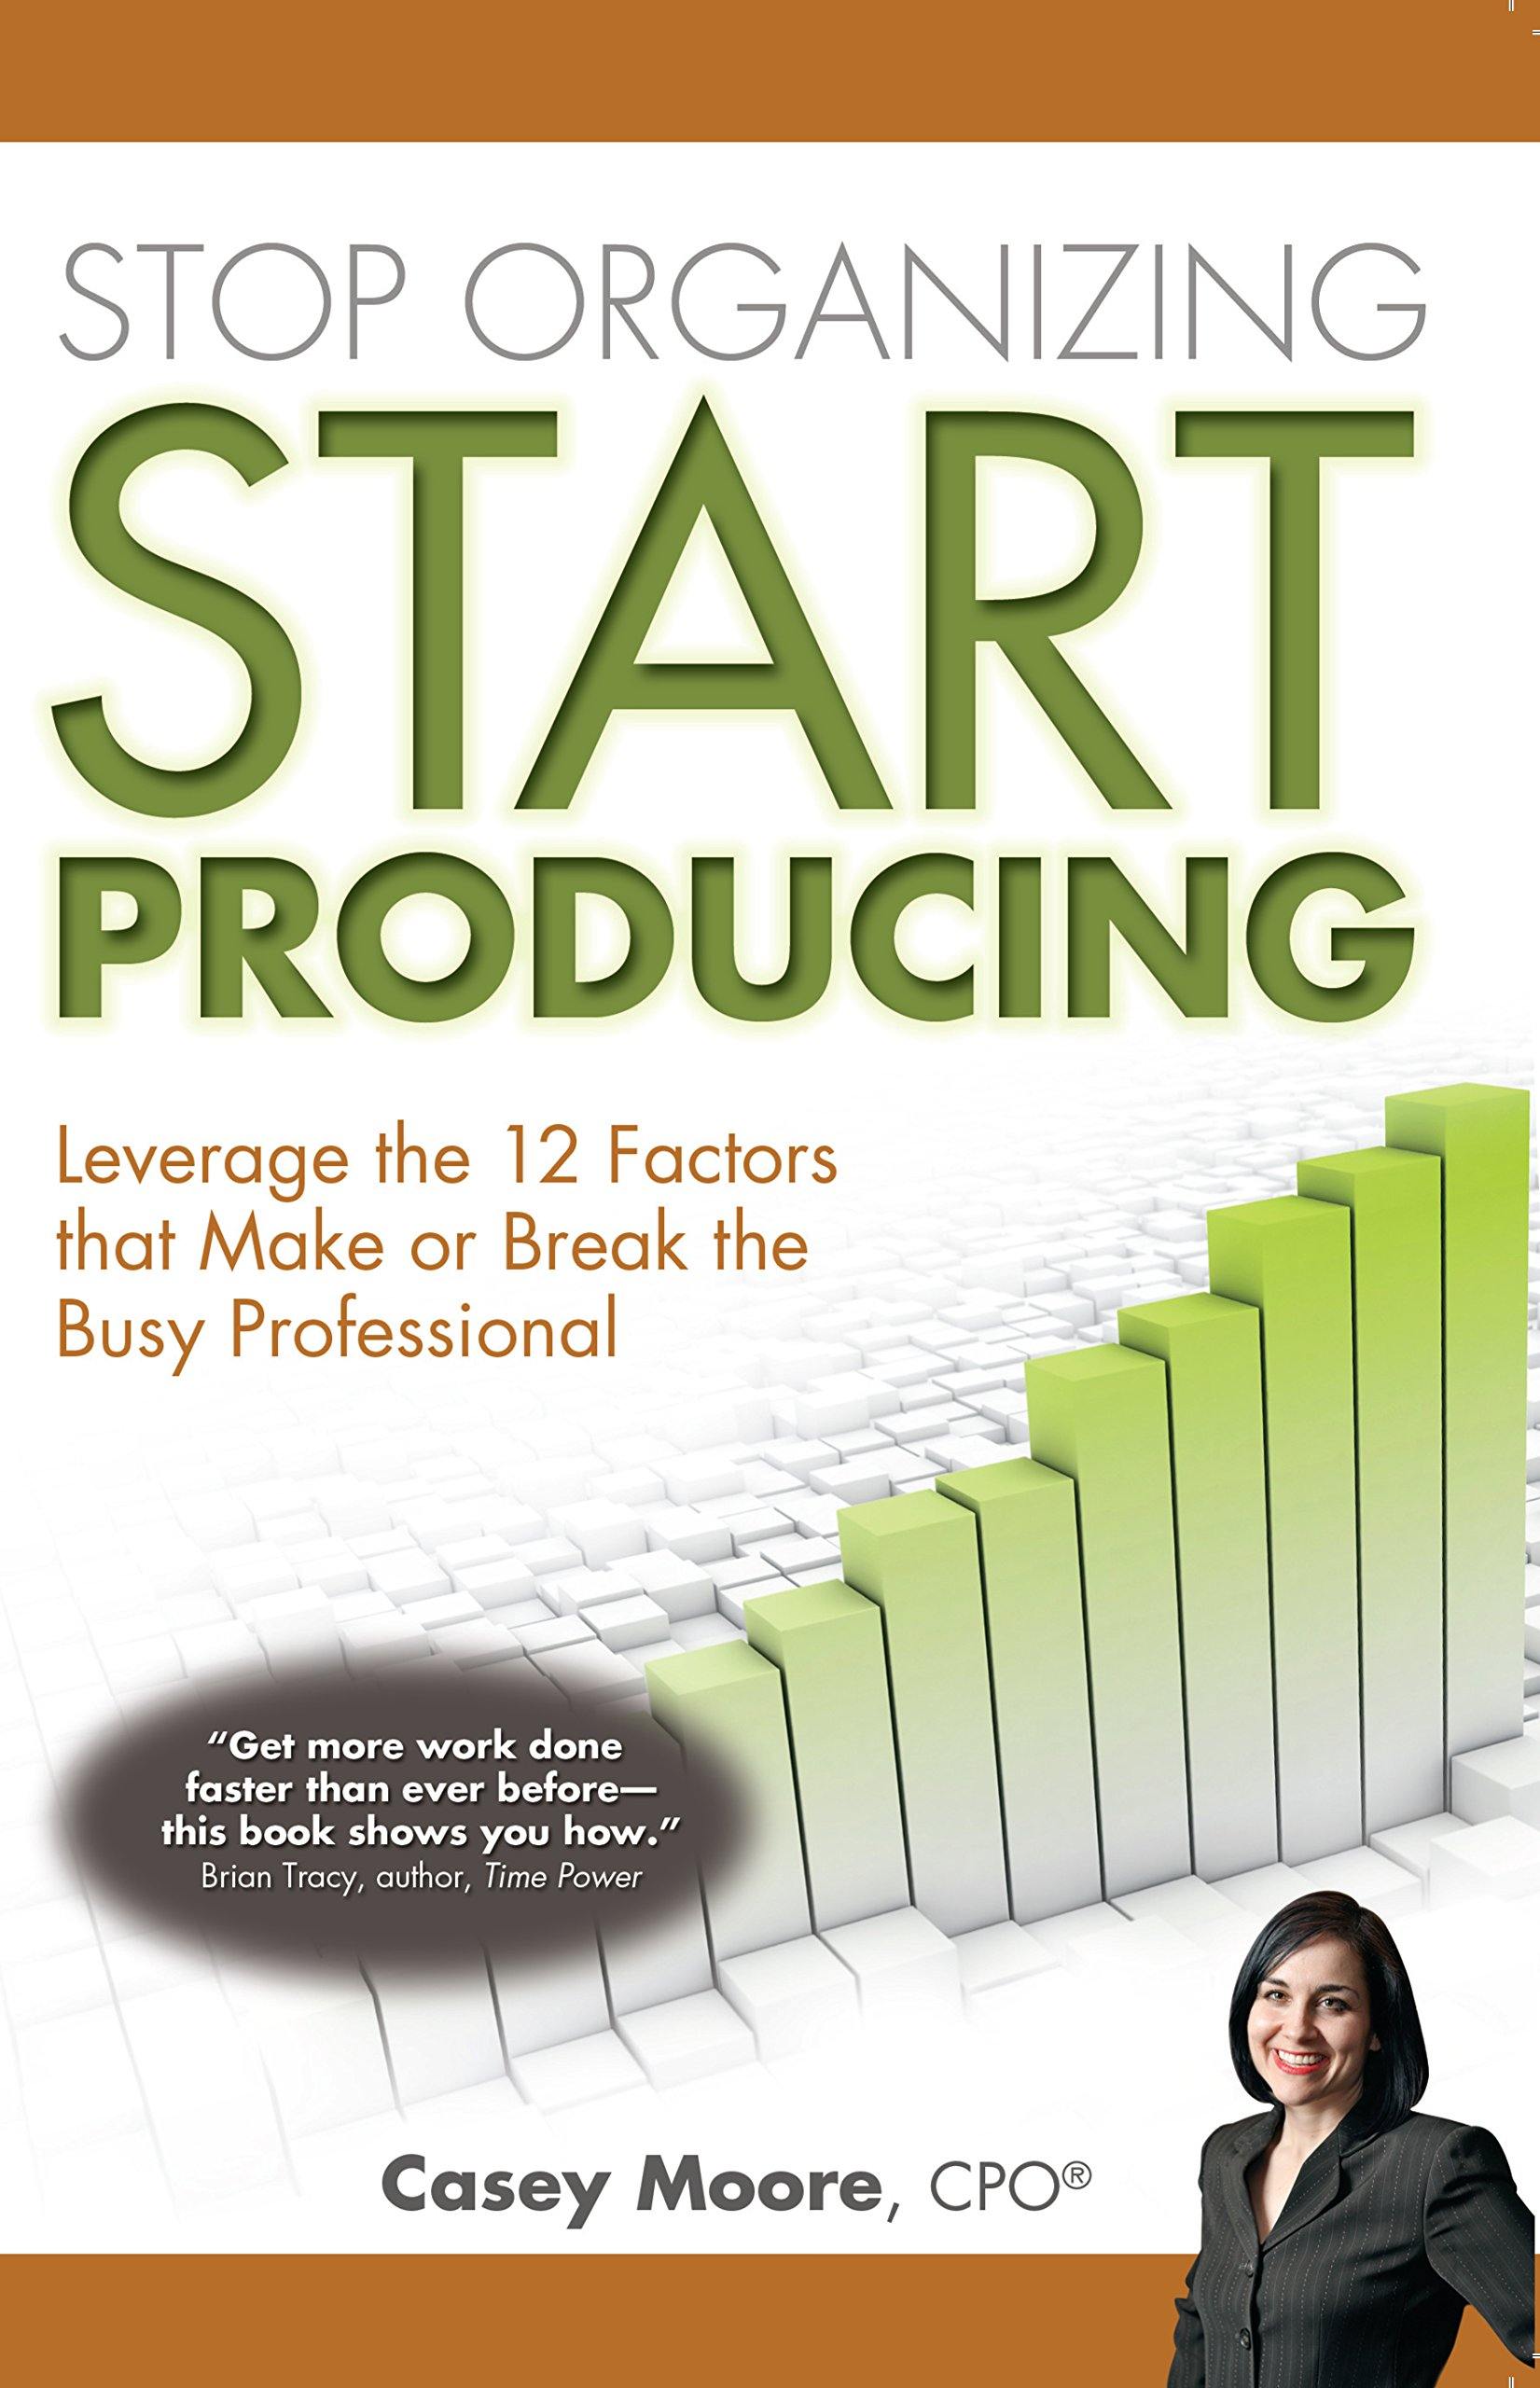 Stop Organizing Start Producing: Leverage the 12 Factors that Make or Break the Busy Professional